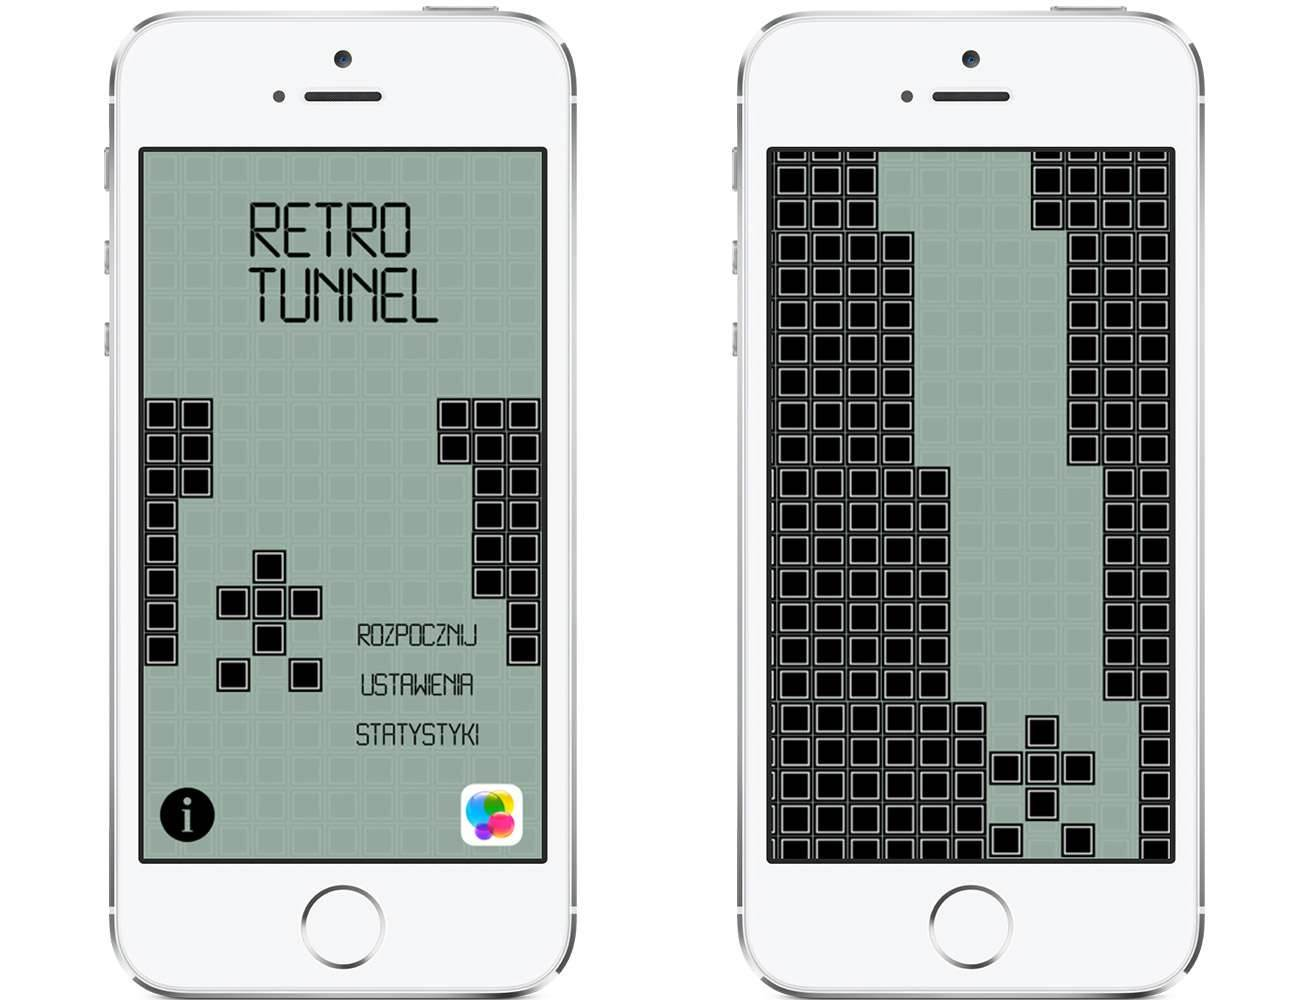 RetroTunnel.onetech.pl